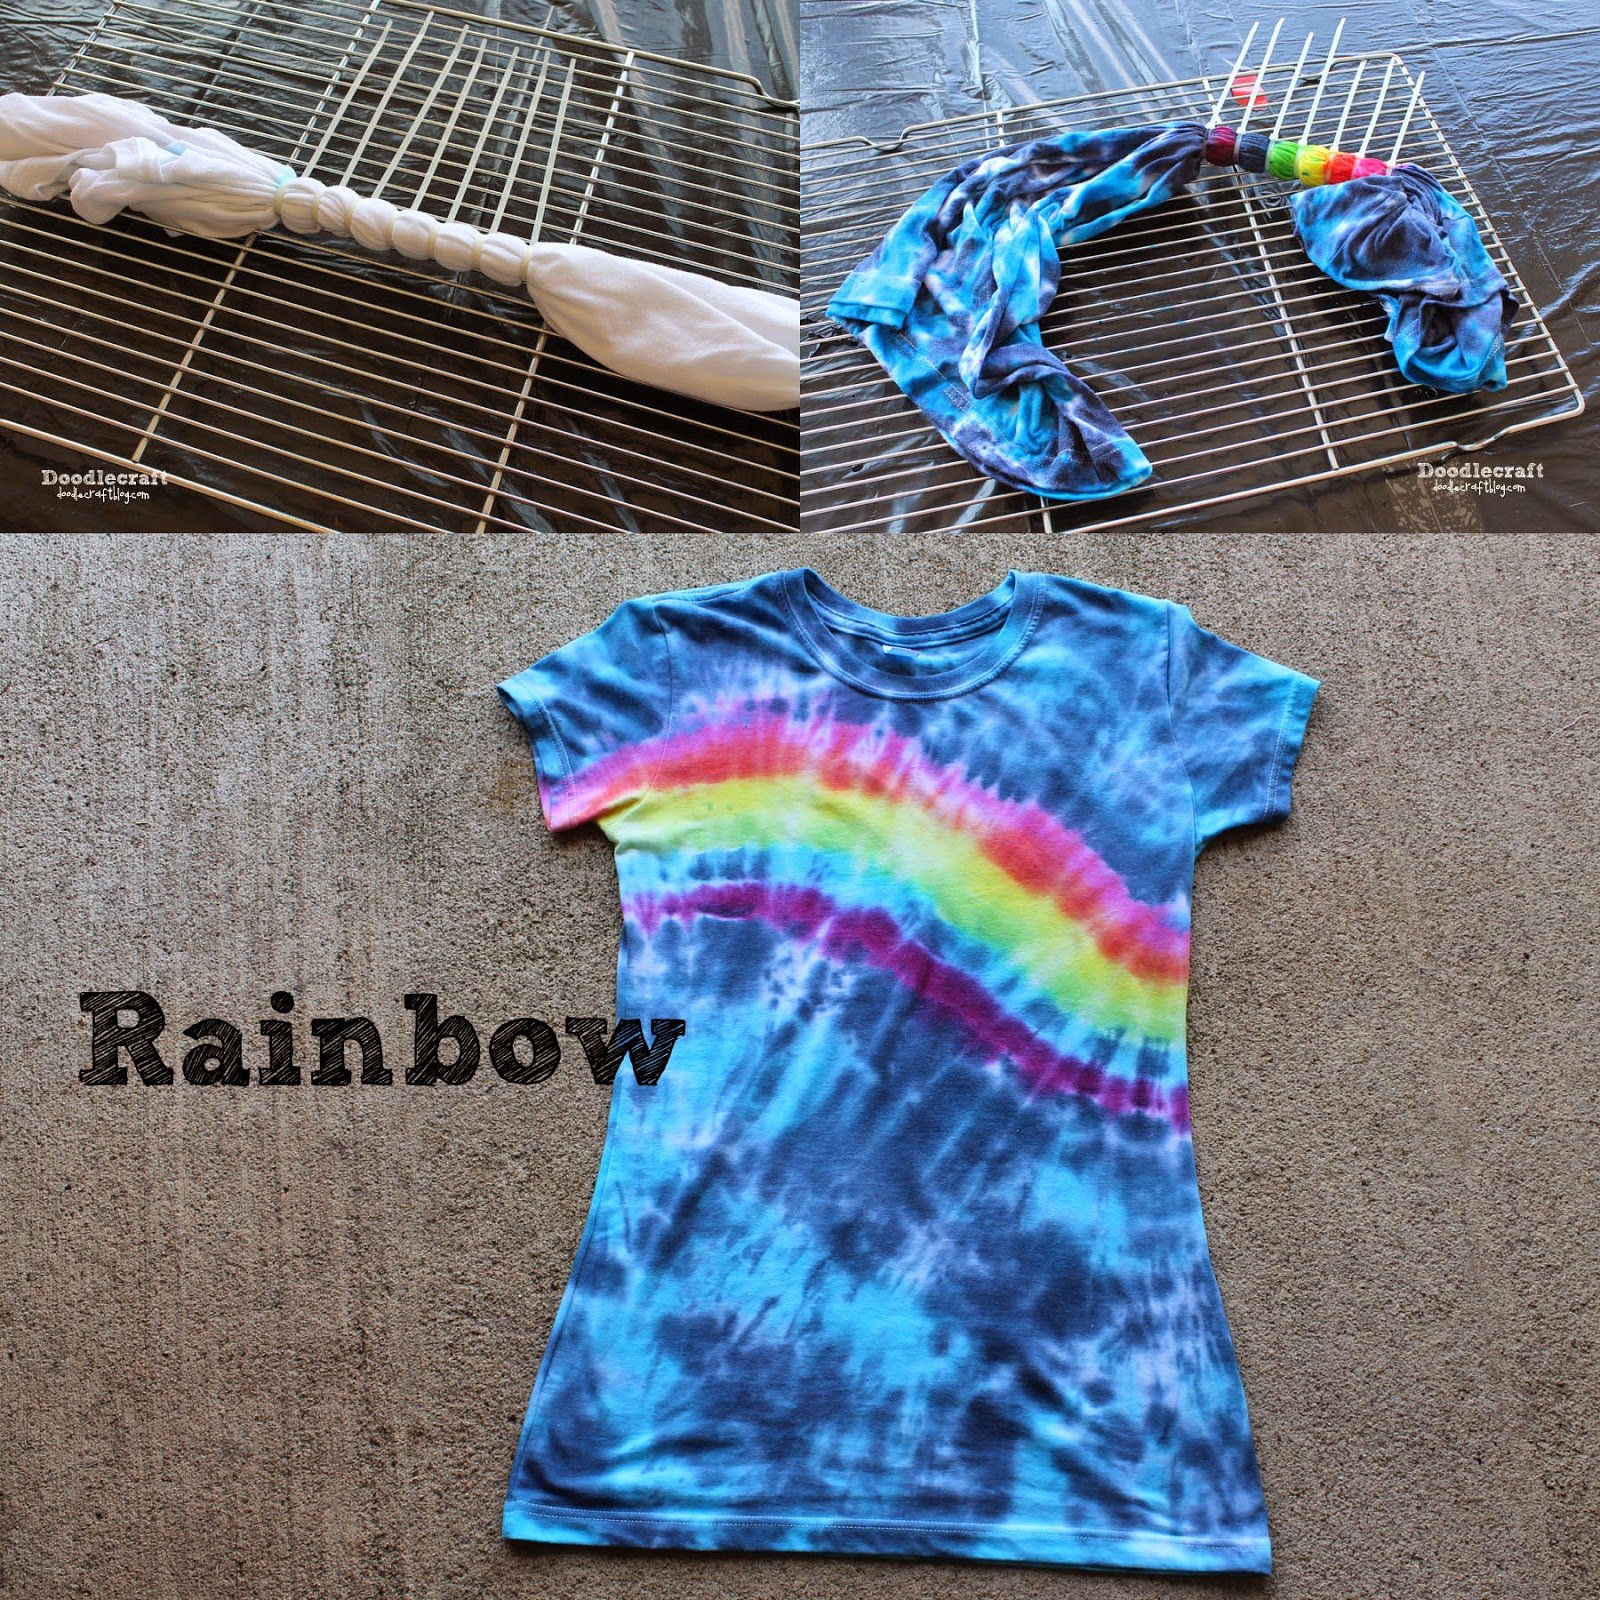 Doodlecraft tulip tie dye t shirt party for Making a tie dye shirt